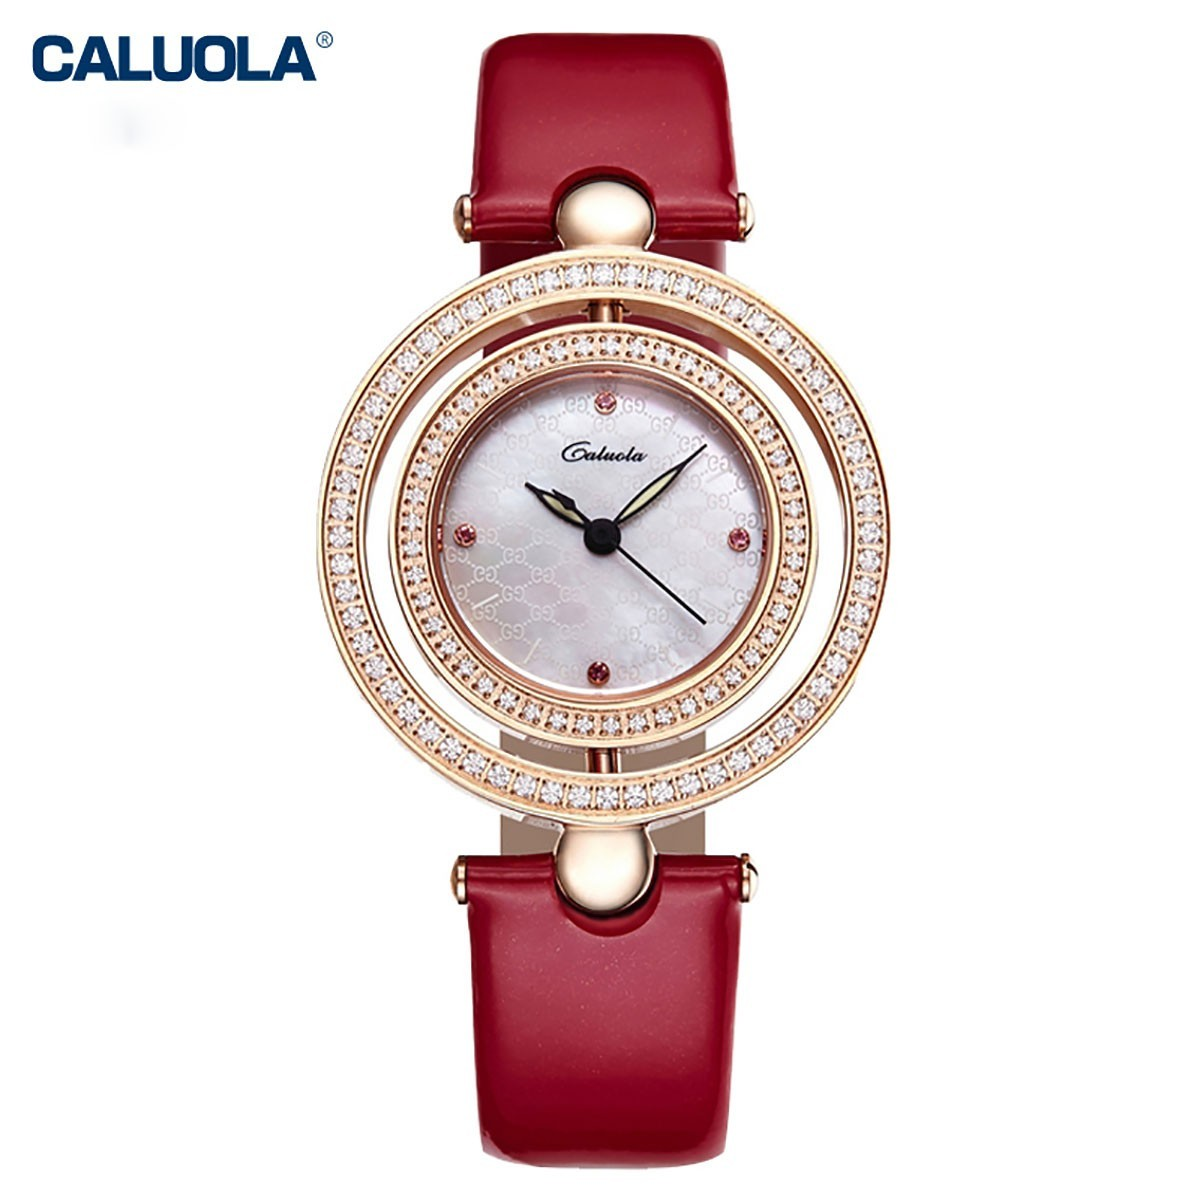 Caluola Women Watch 34mm Rose Gold 1105